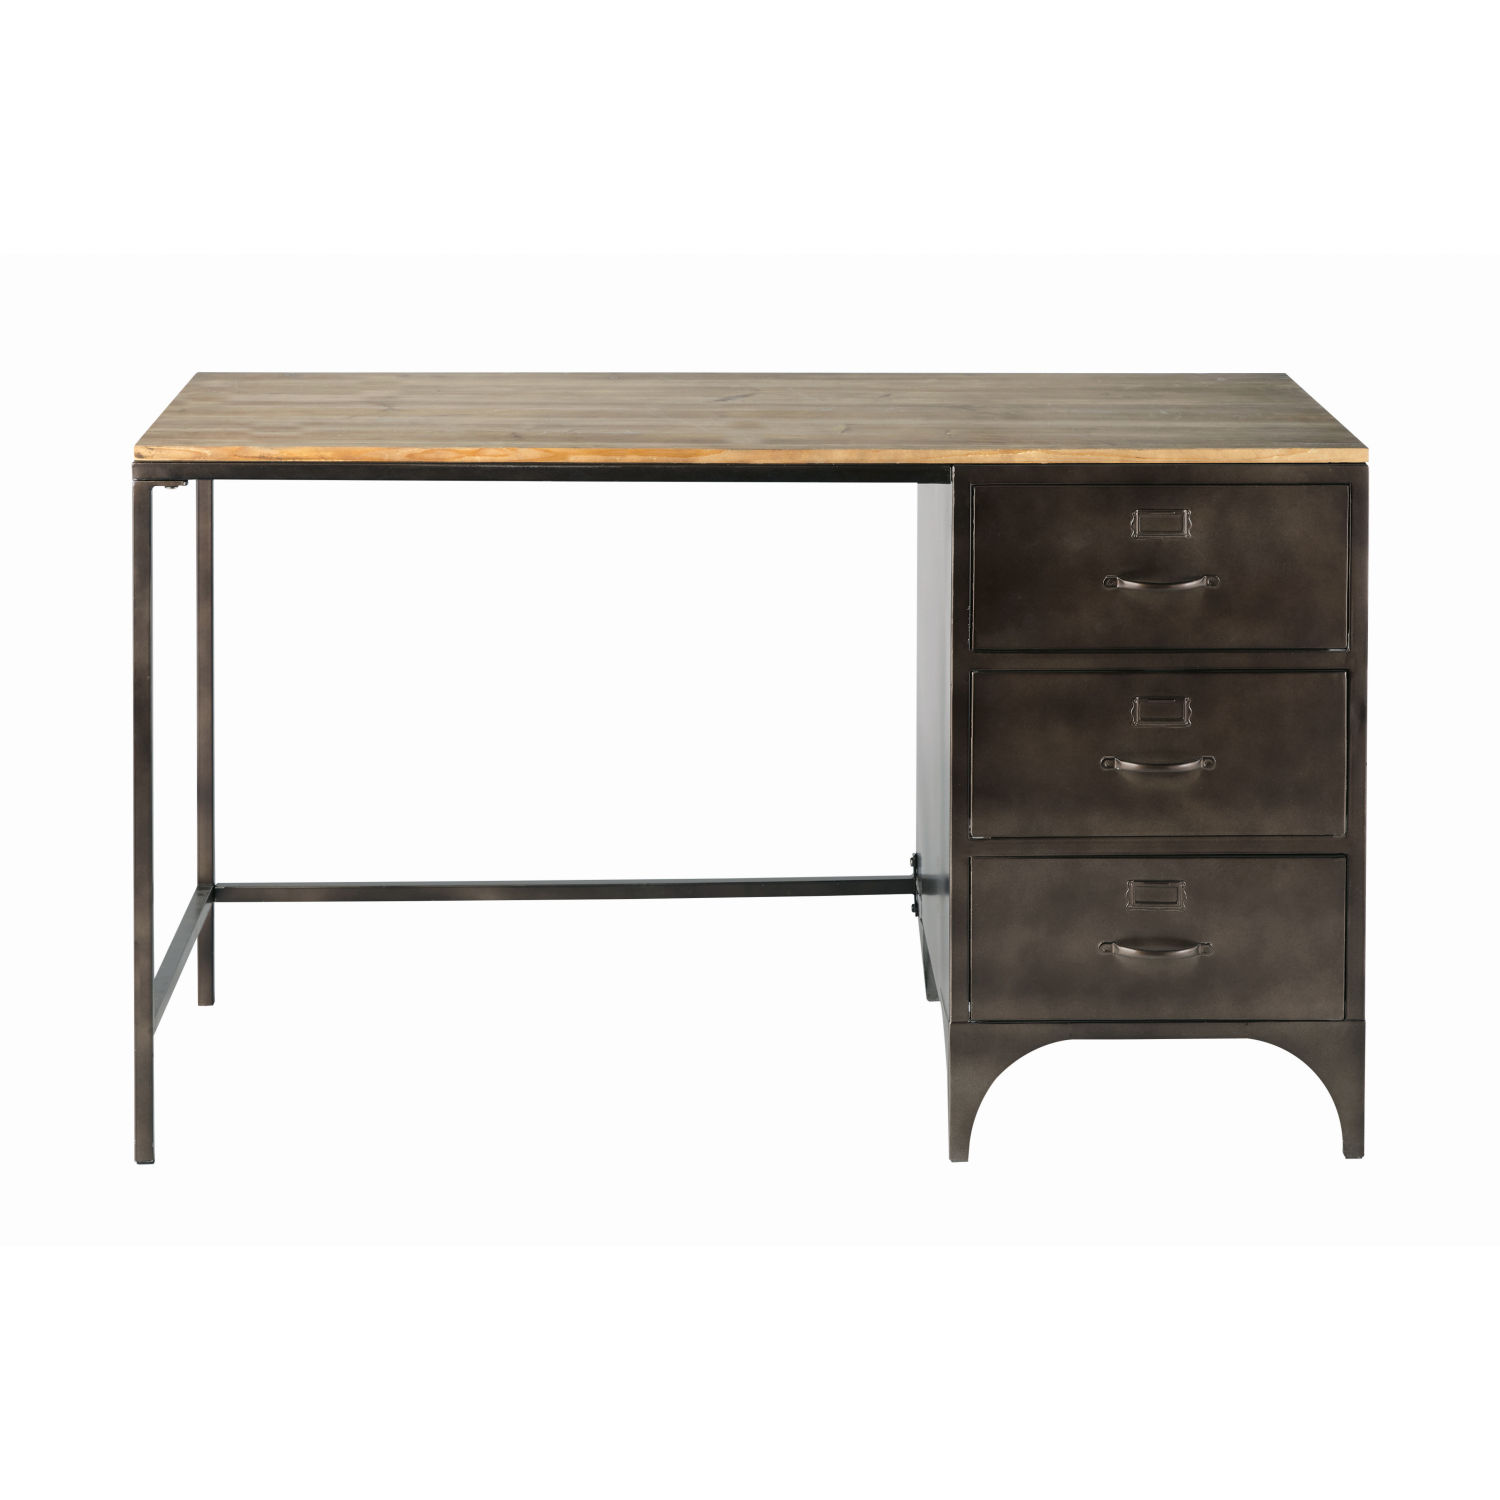 bureau indus 3 tiroirs en m tal et sapin maisons du monde. Black Bedroom Furniture Sets. Home Design Ideas